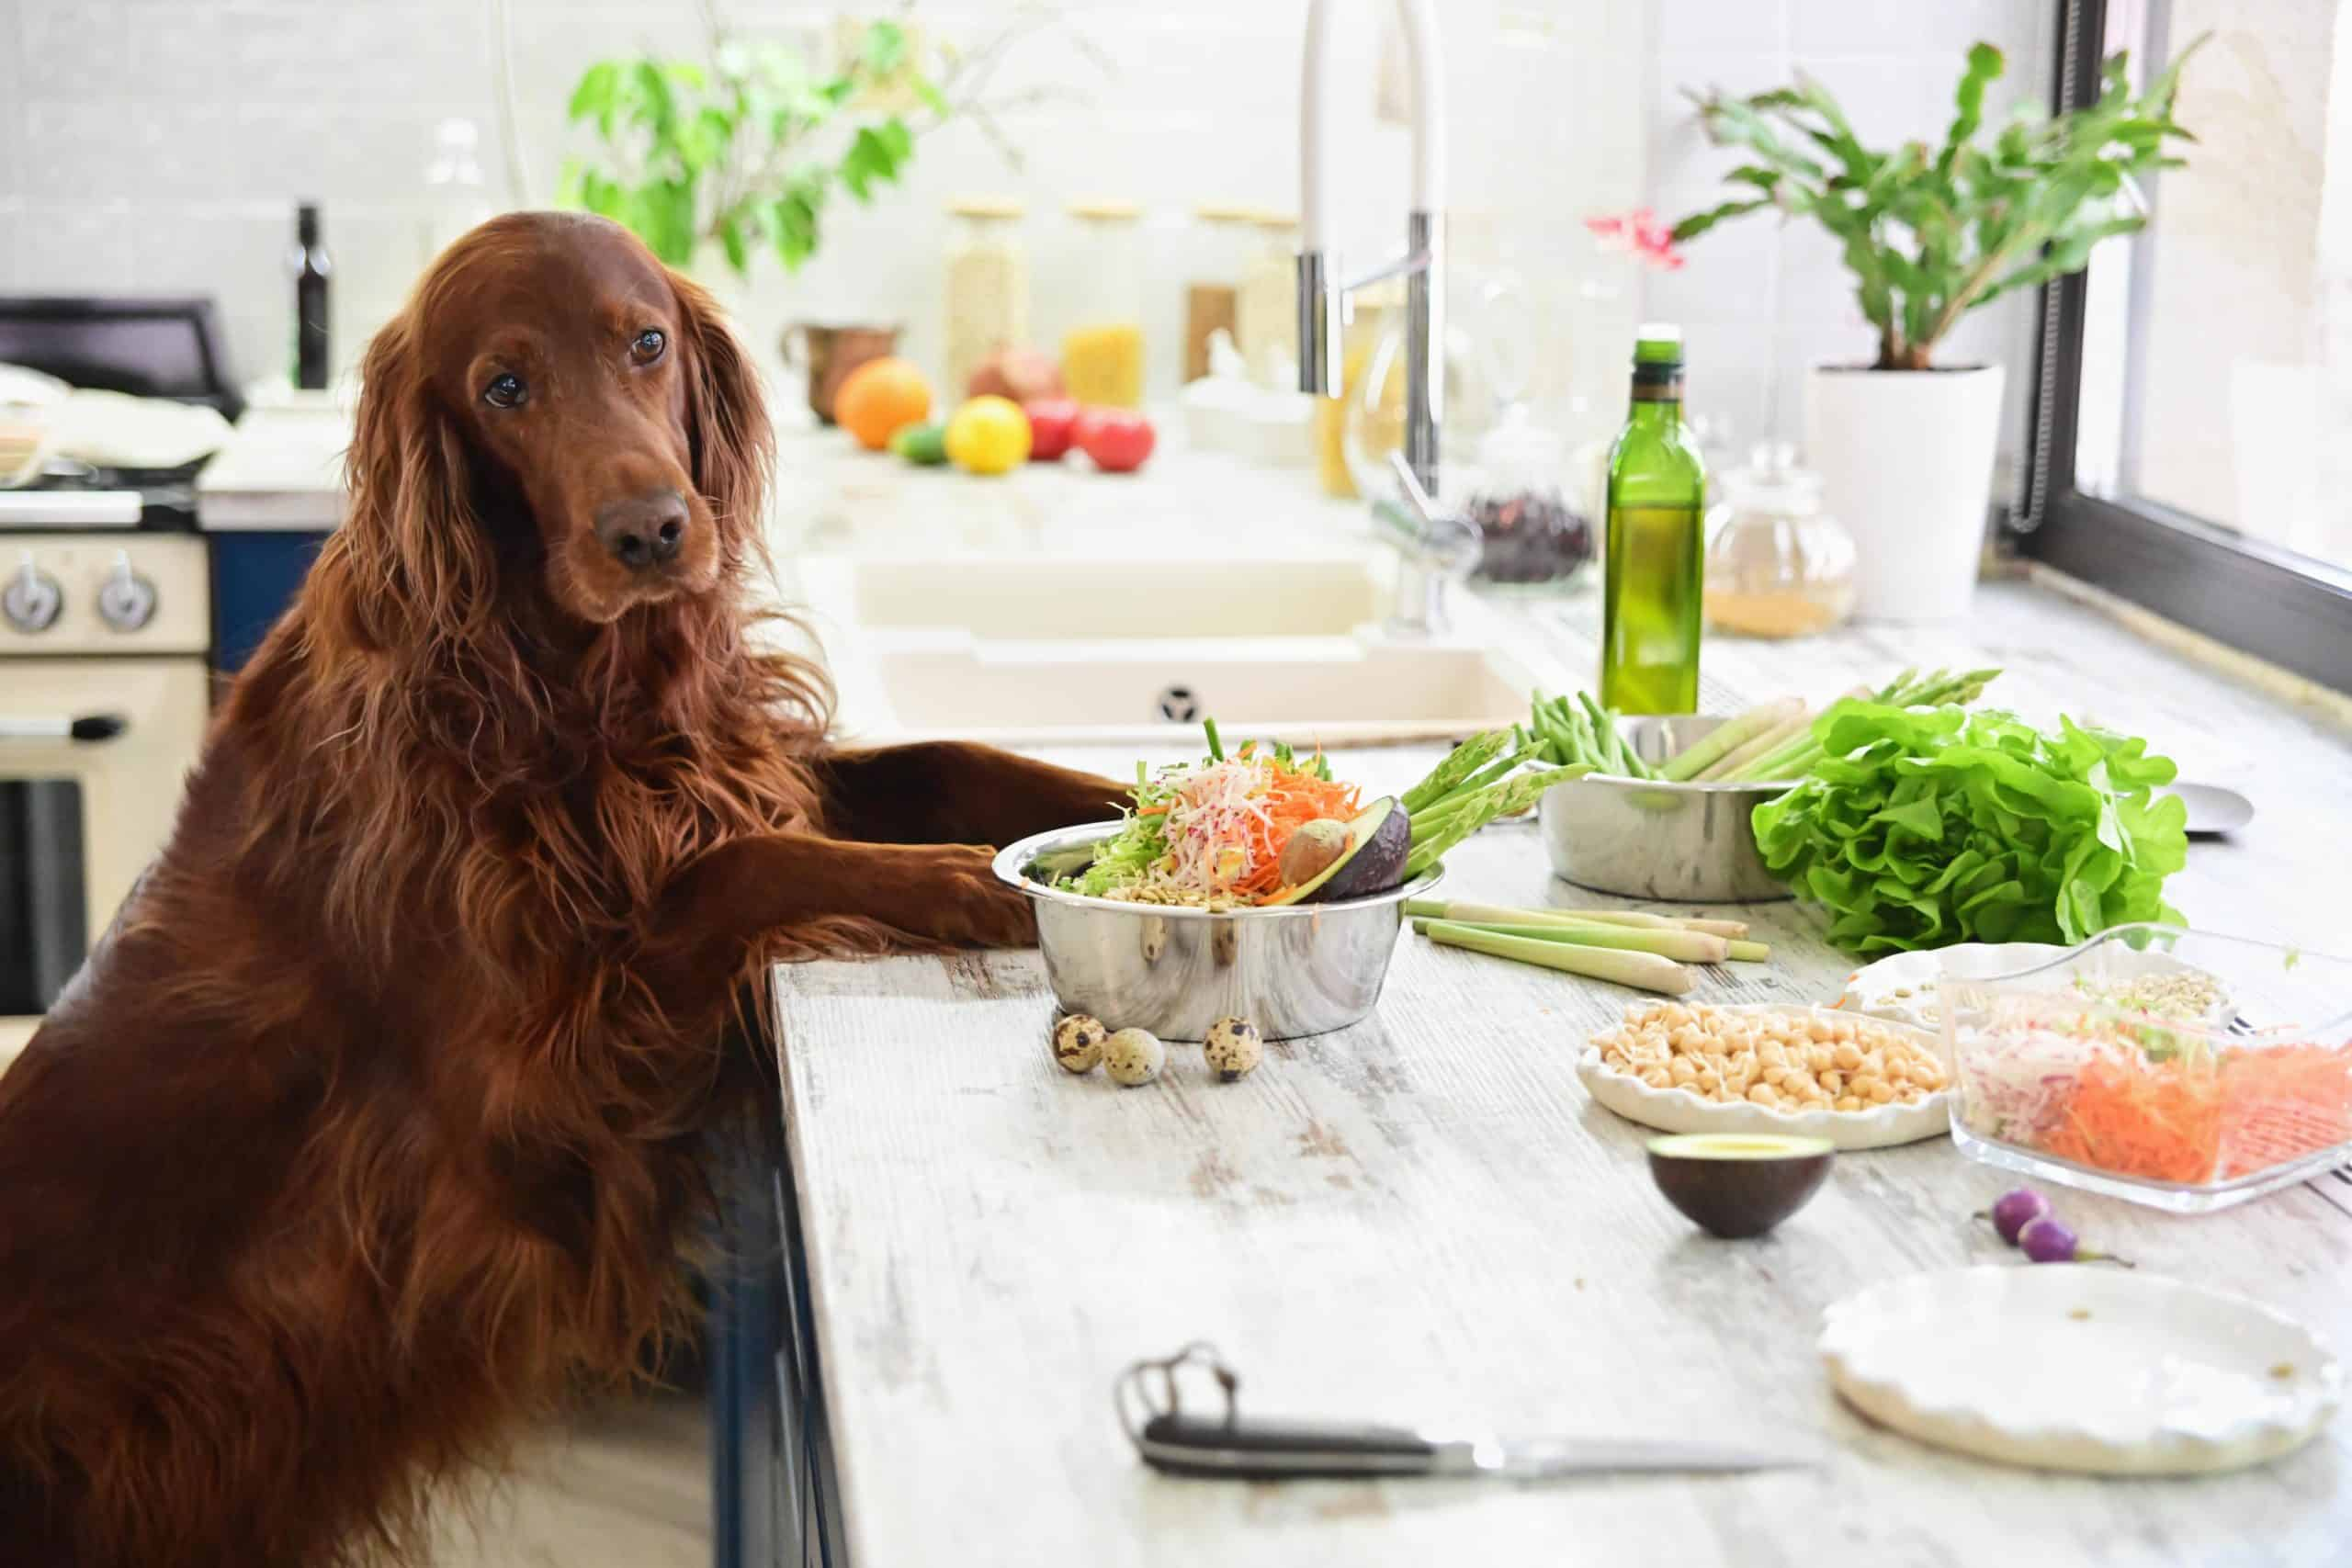 Irish Setter pictured with food ingredients. If you have time, make homemade dog food cooked in a clean environment, using high-quality, fresh ingredients.